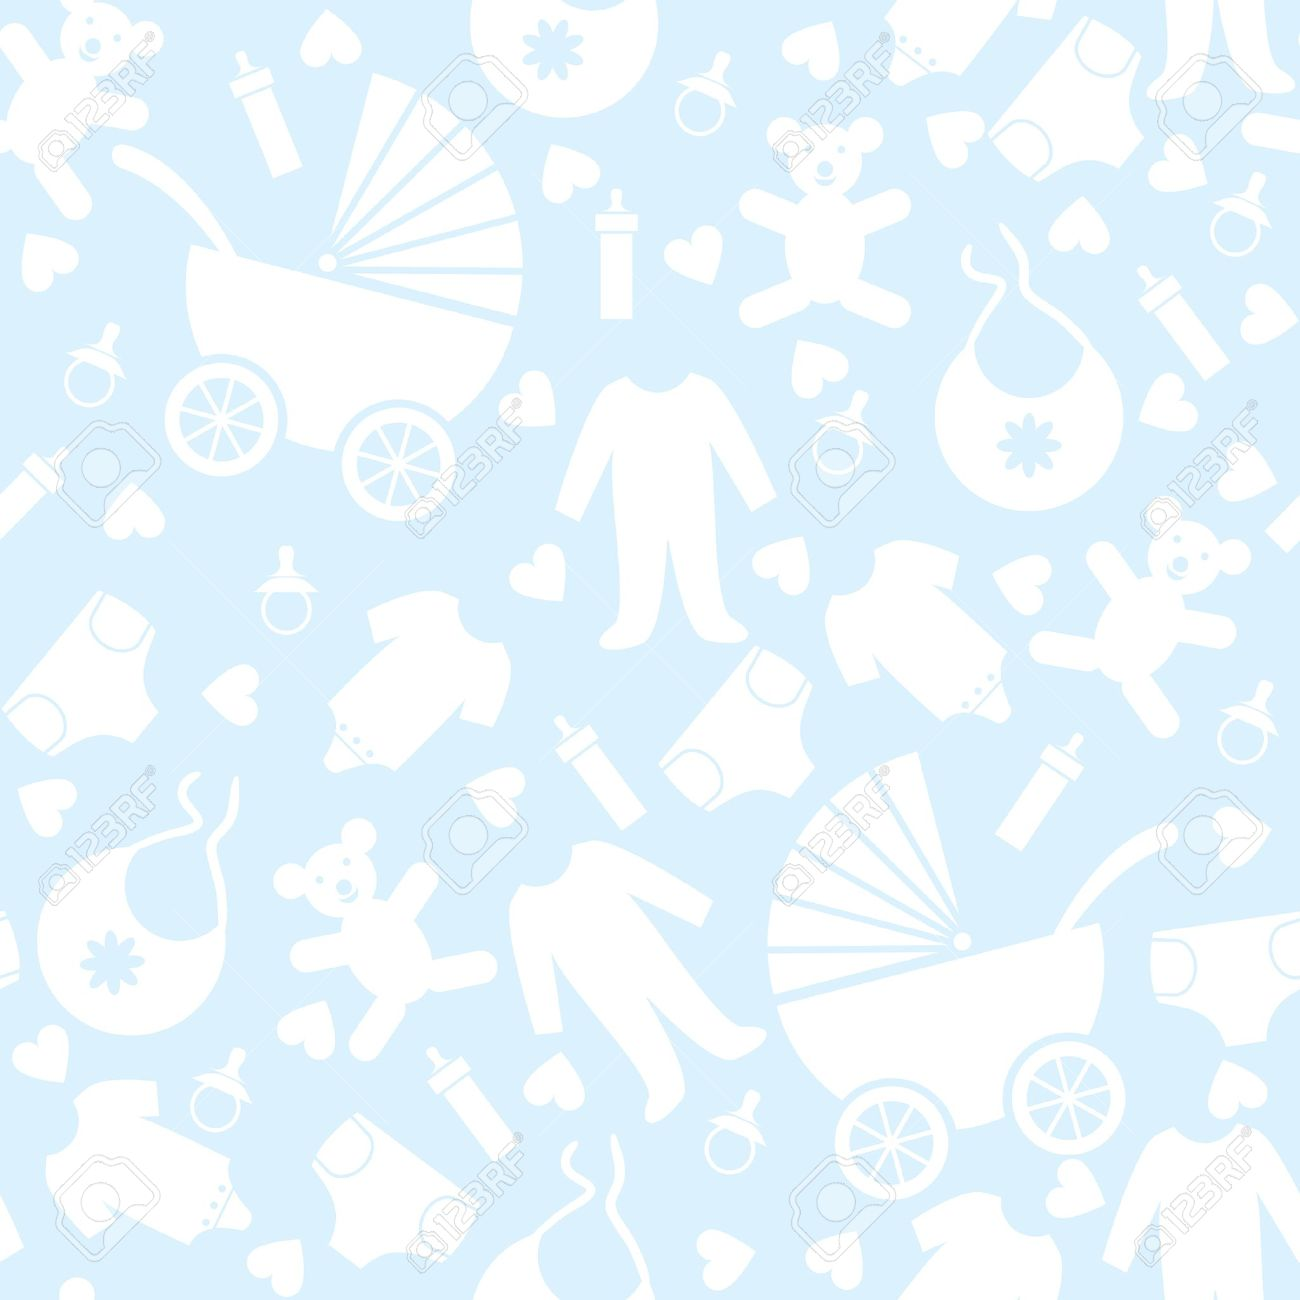 High Quality Seamless Blue Baby Background For Baby Shower Stock Vector   16703471